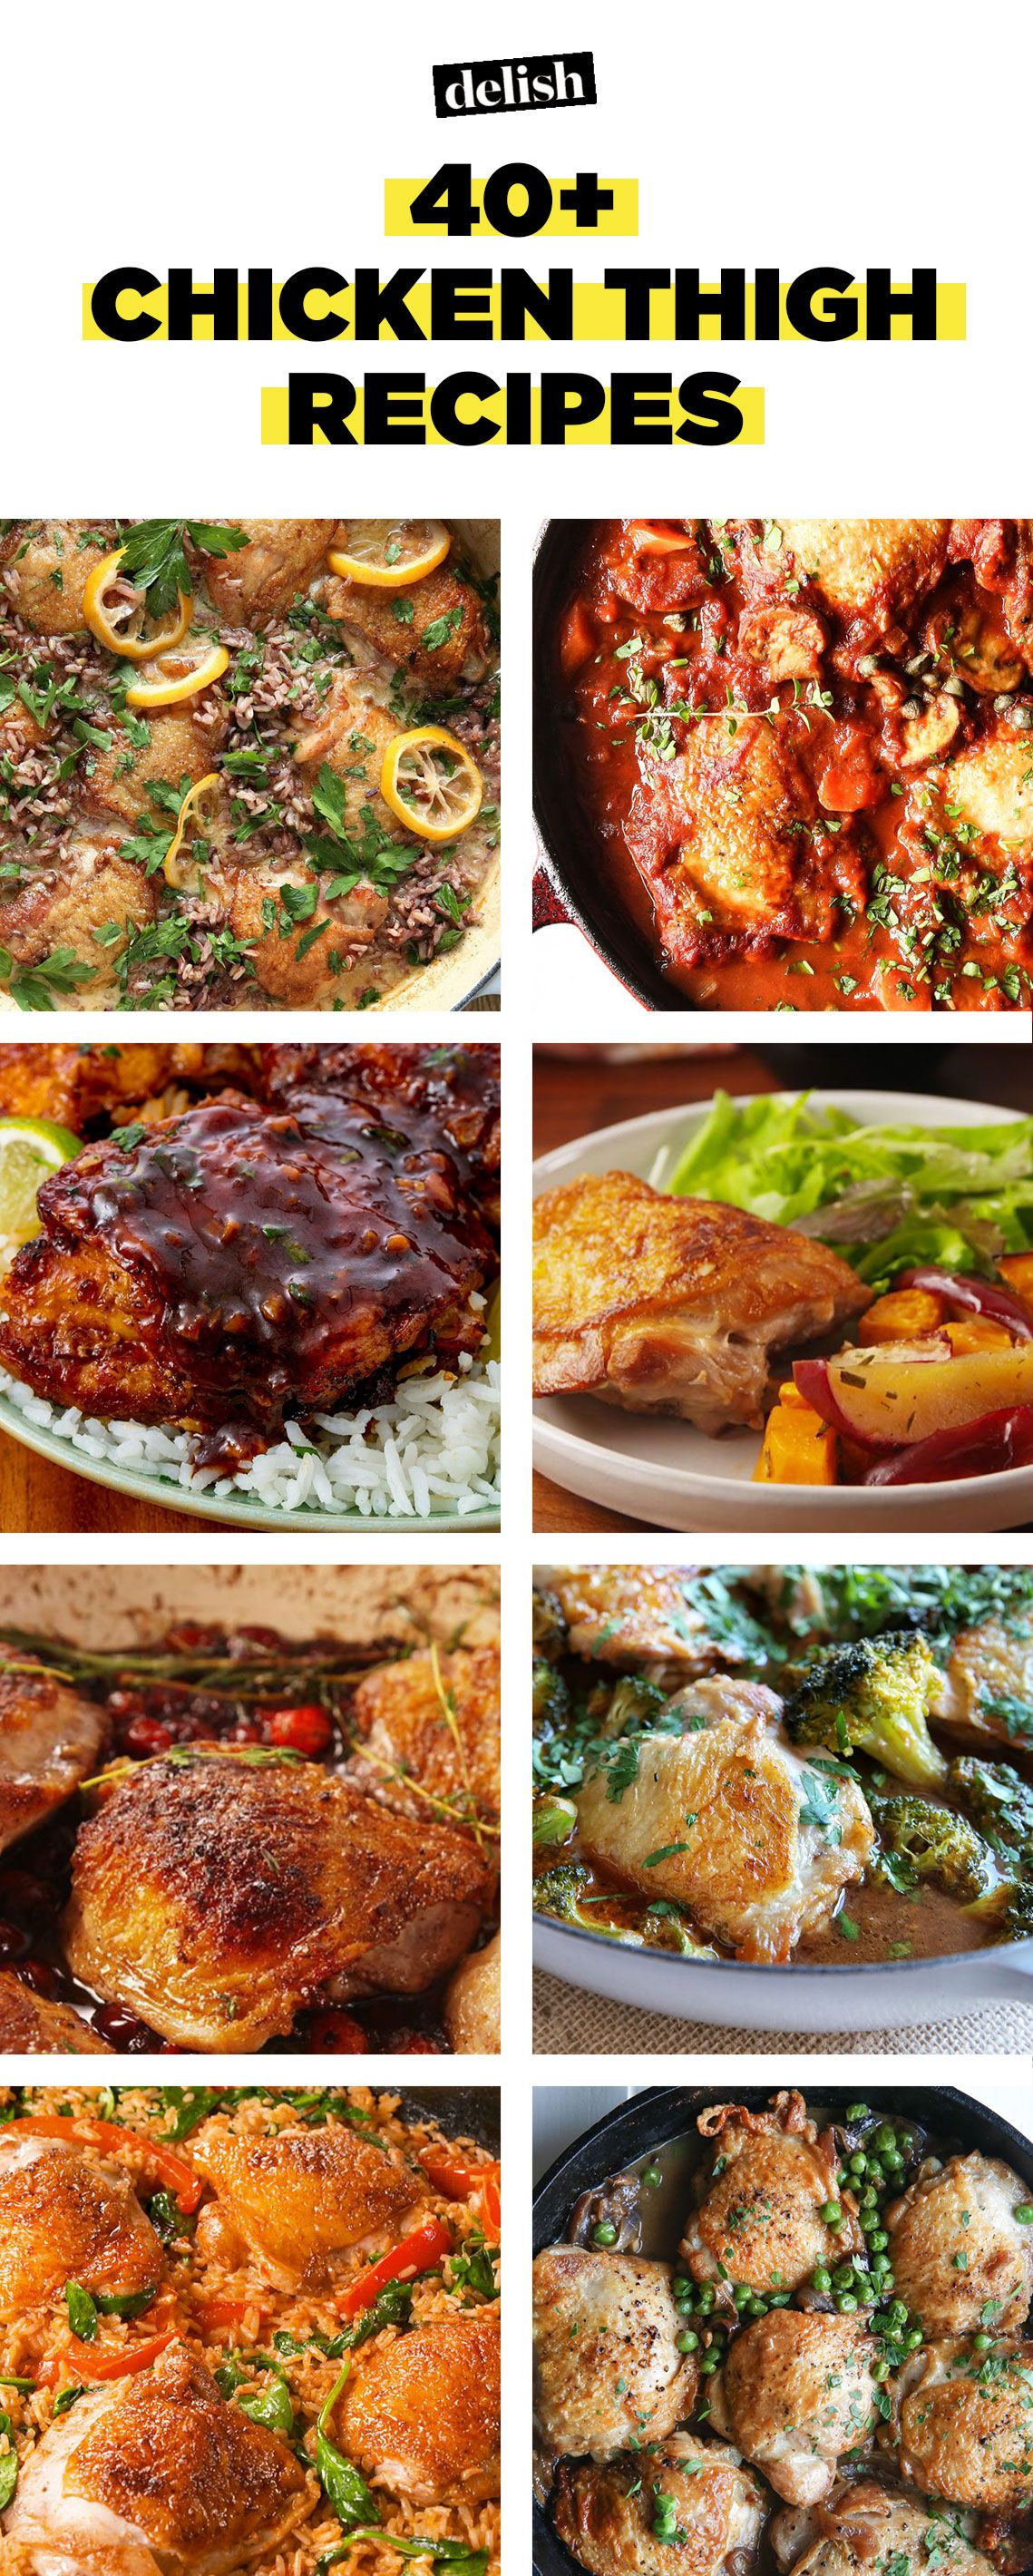 40 easy chicken thigh recipes how to cook healthy chicken thigh 40 easy chicken thigh recipes how to cook healthy chicken thigh delish forumfinder Image collections